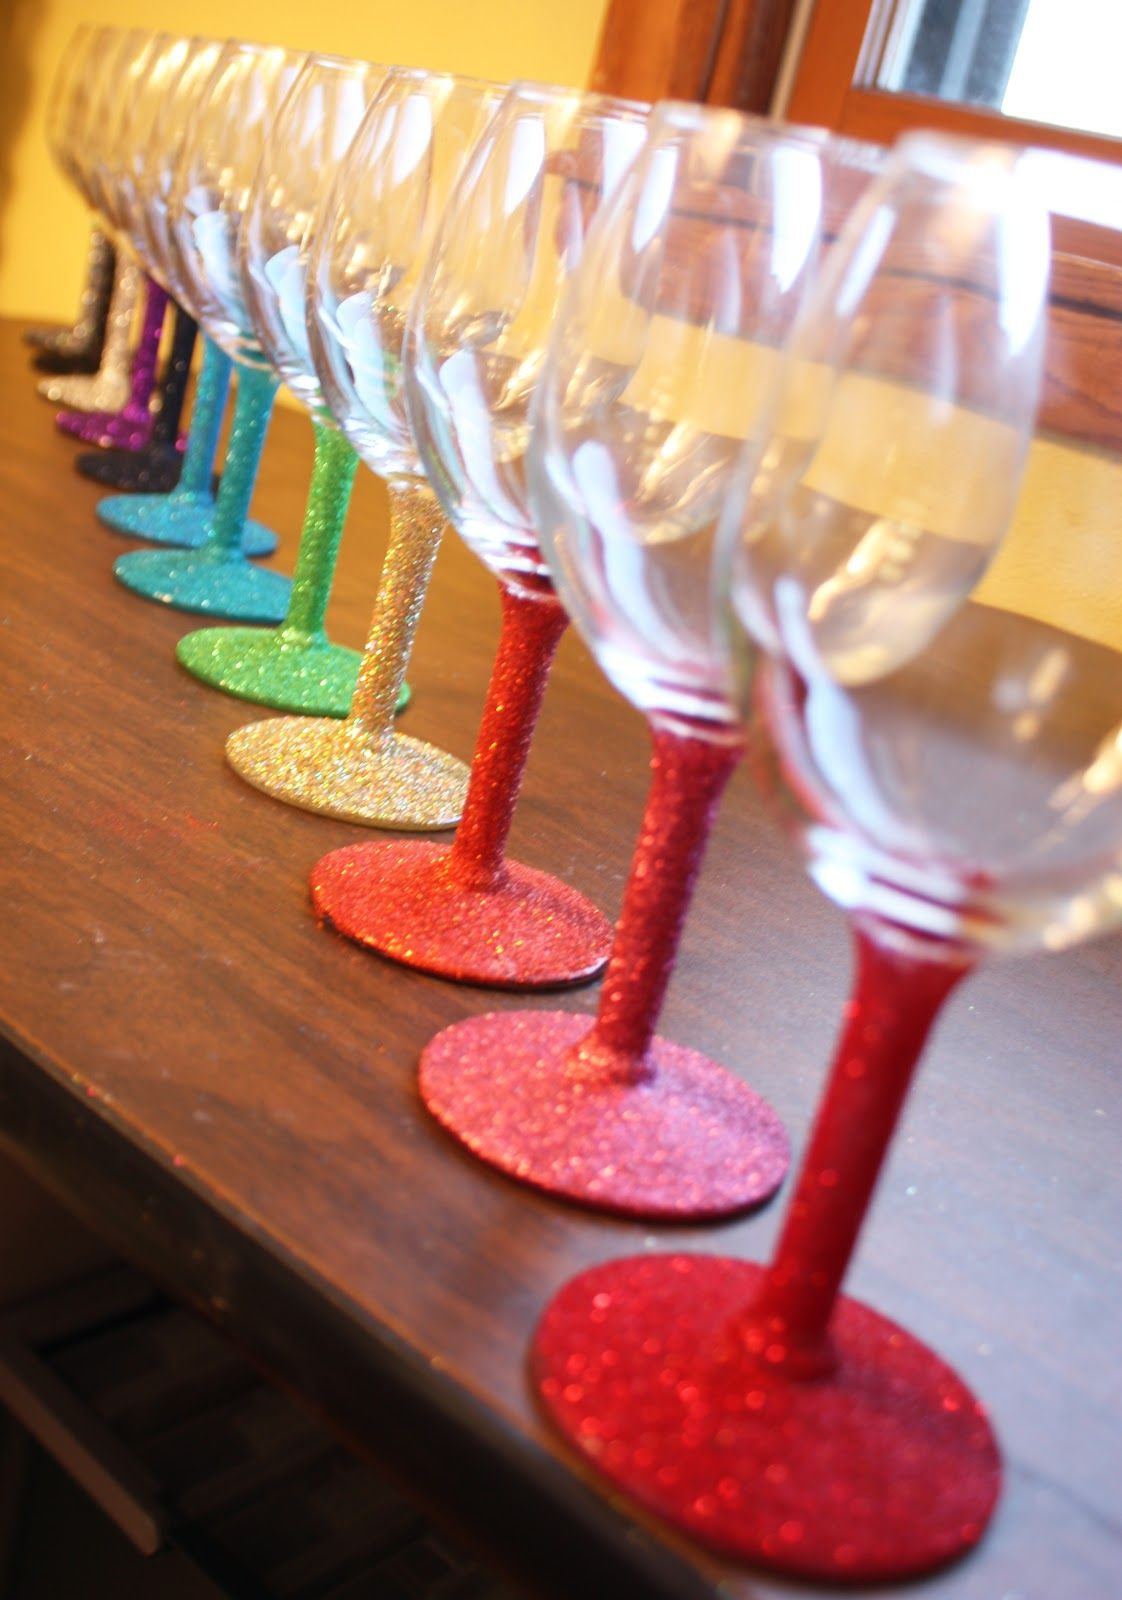 Celebrate In Style With Art Glitter Diy Wine Glasses Glitter Wine Glitter Wine Glasses